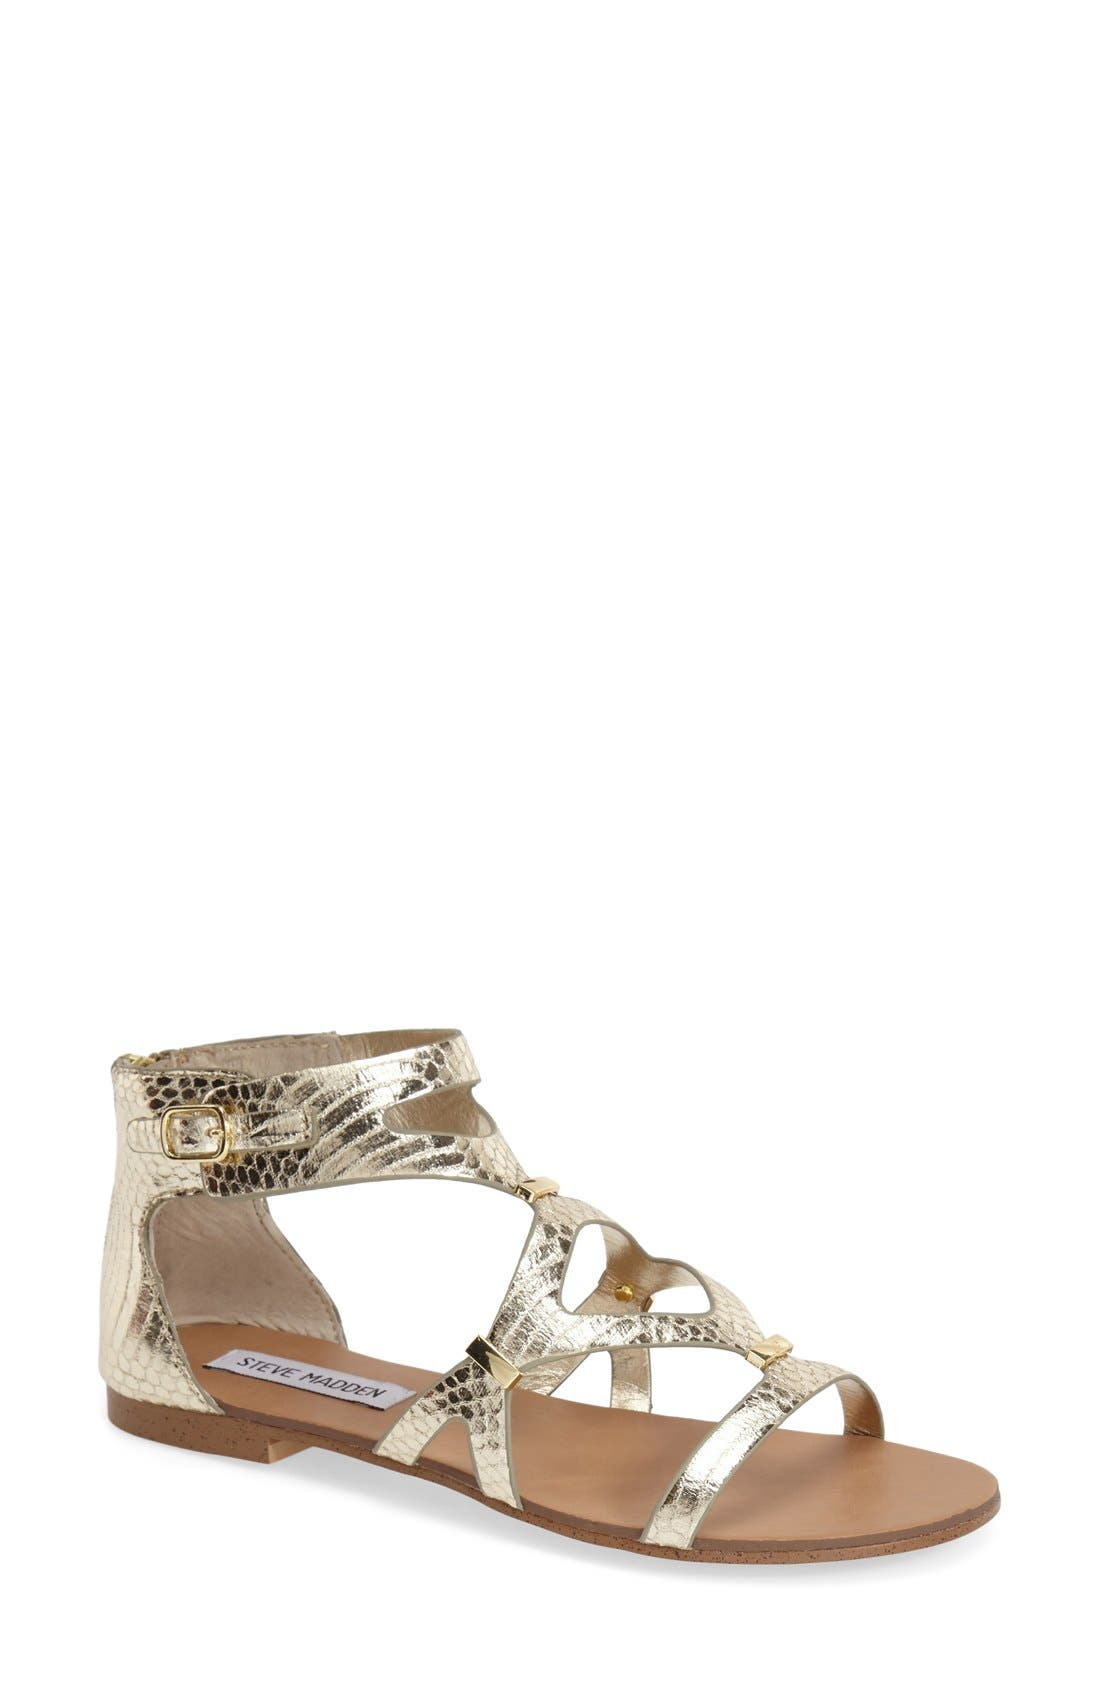 Alternate Image 1 Selected - Steve Madden 'Comly' Gladiator Sandal (Women)